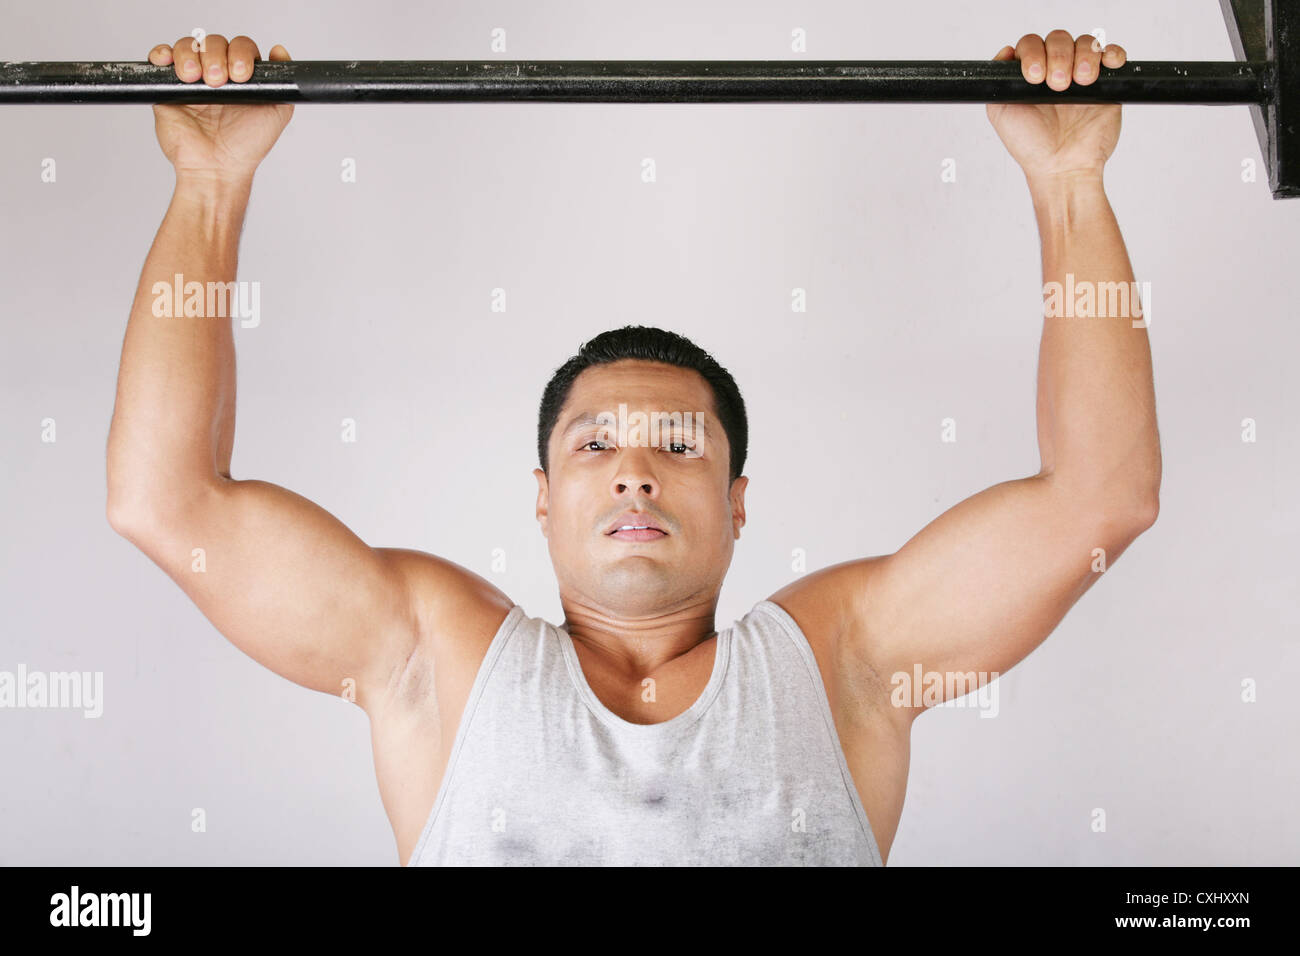 Ripped Abs Stockfotos & Ripped Abs Bilder - Alamy